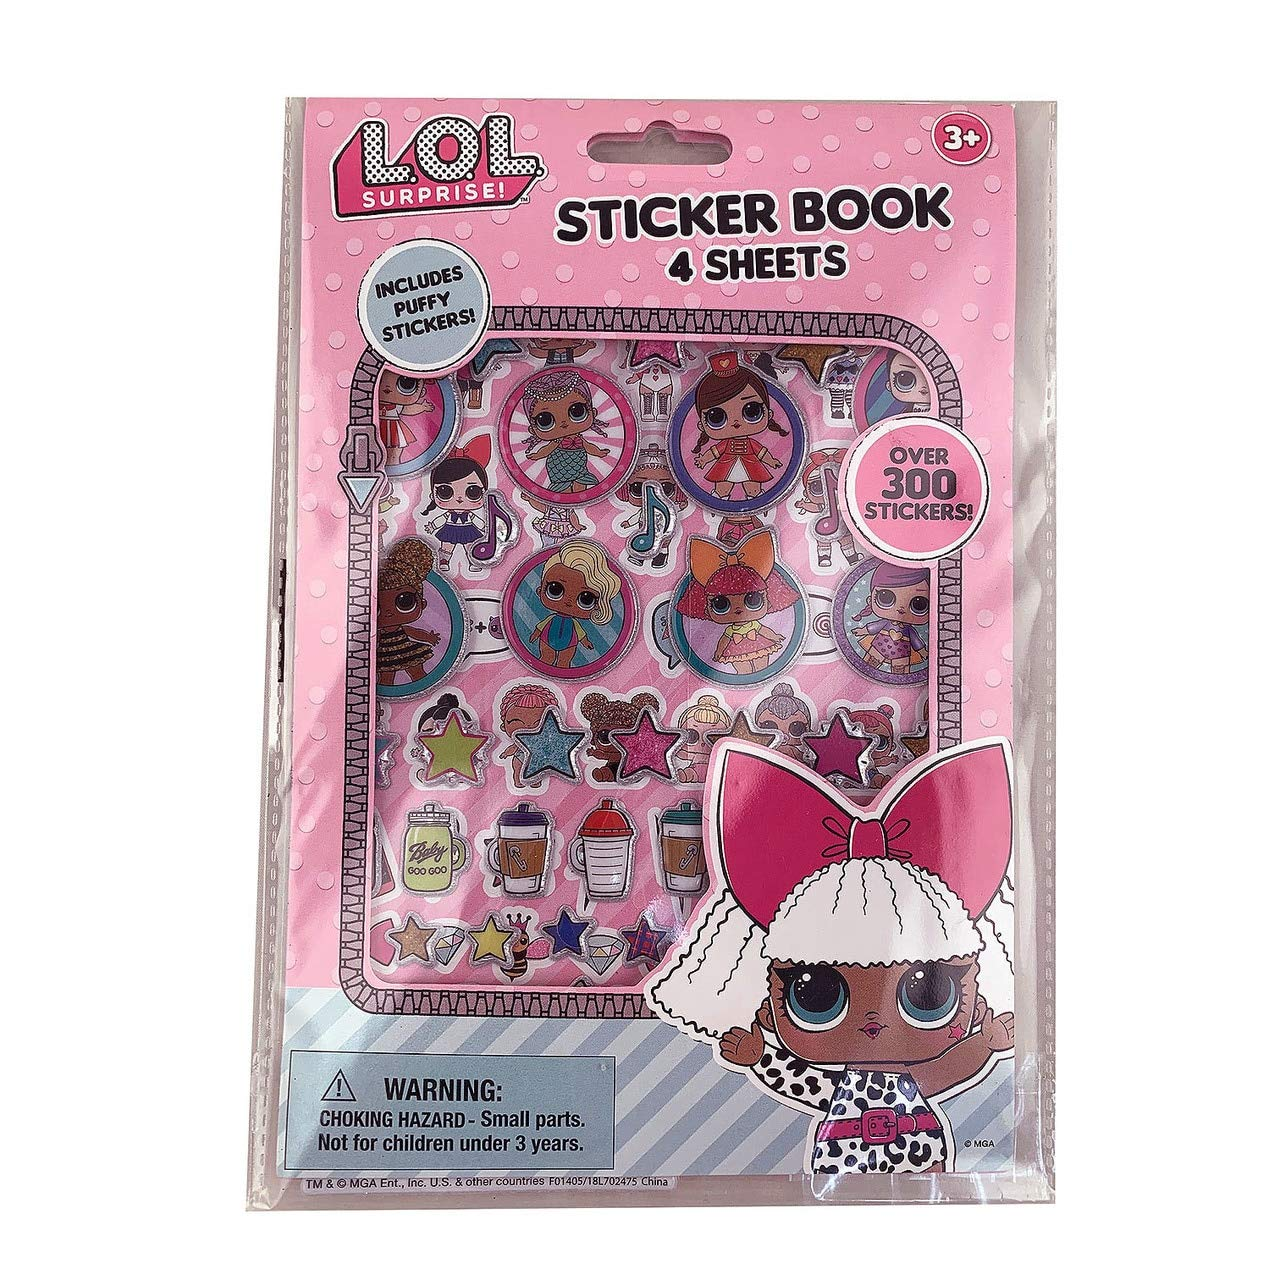 NEW! STICKER BOOK OVER 300+ STICKERS INCLUDES PUFFY STICKERS LOL SURPRISE